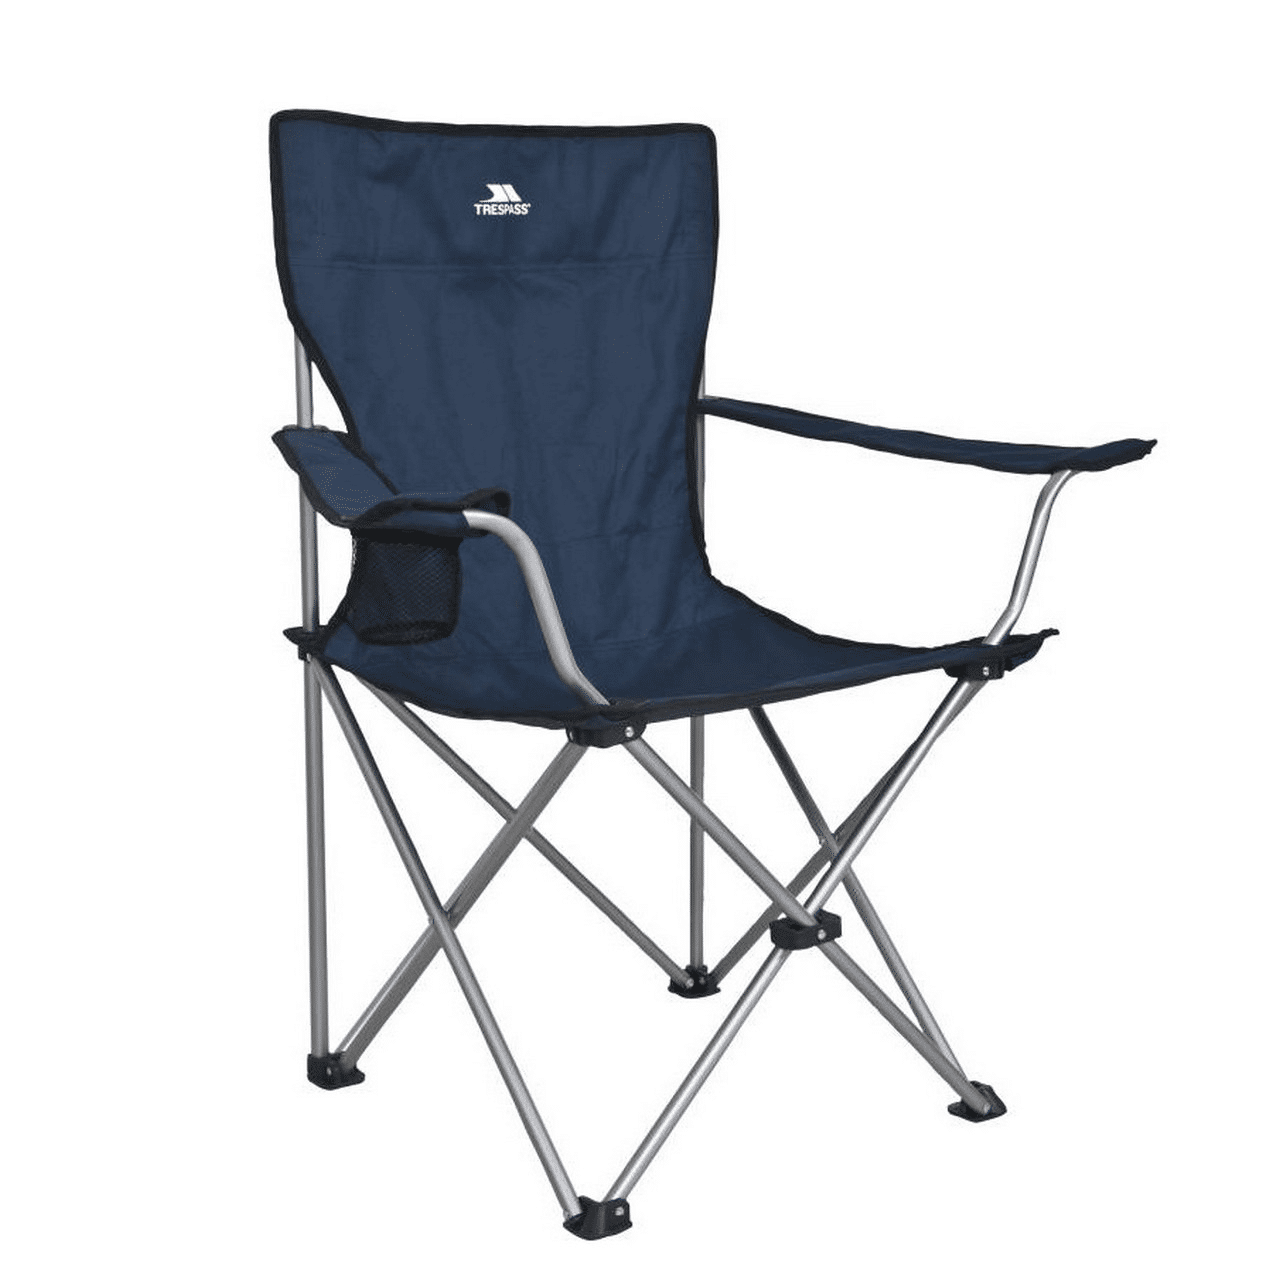 Trespass Settle - Chaise De Camping Pliable (Bleu) - UTTP610